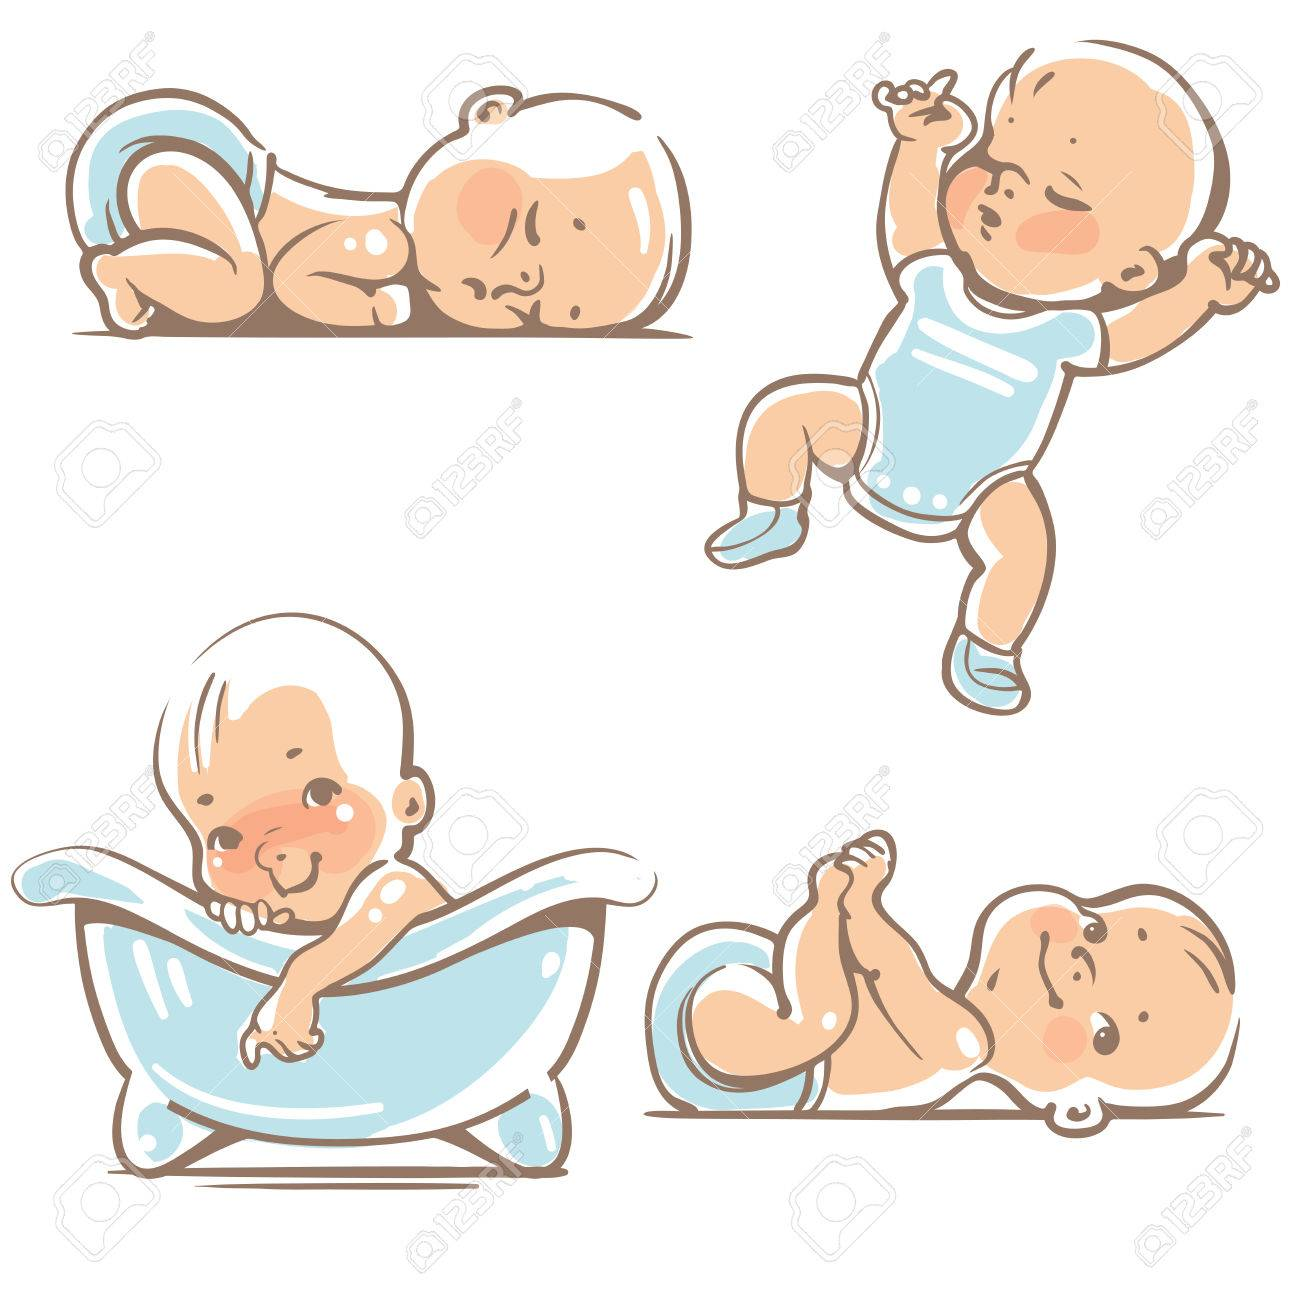 Set with cute baby boys 0-12 months. Various poses. First year activities. Sleeping positions, on stomach, on back, legs in hands. Swimming in bath. Vector Illustration isolated on white background - 74764672